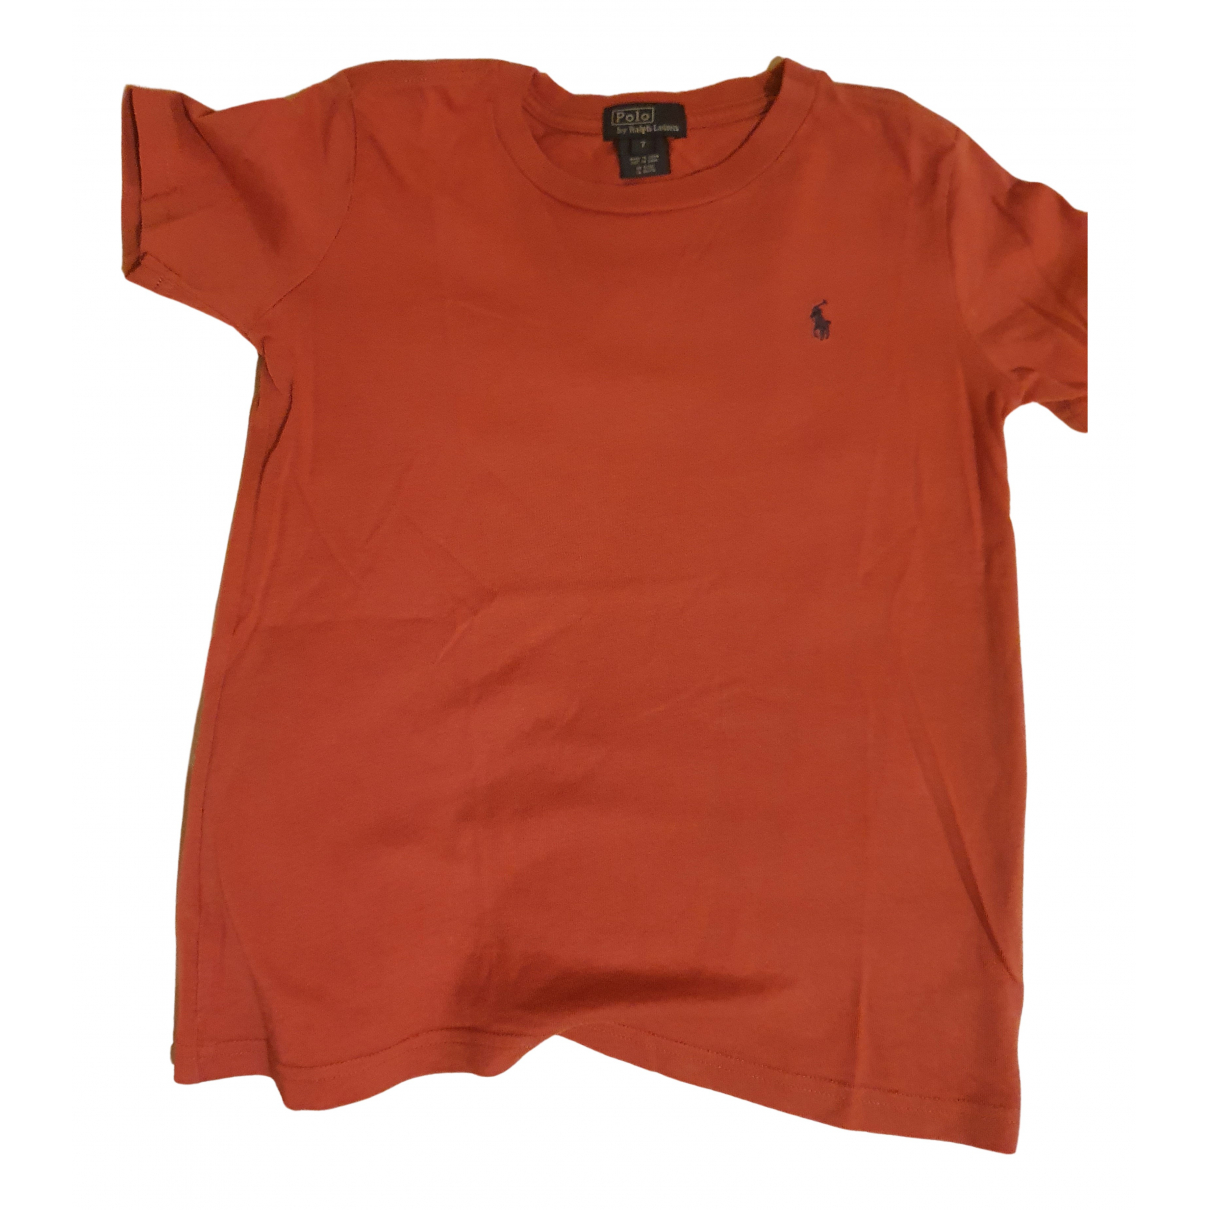 Polo Ralph Lauren N Red Cotton  top for Kids 8 years - up to 128cm FR